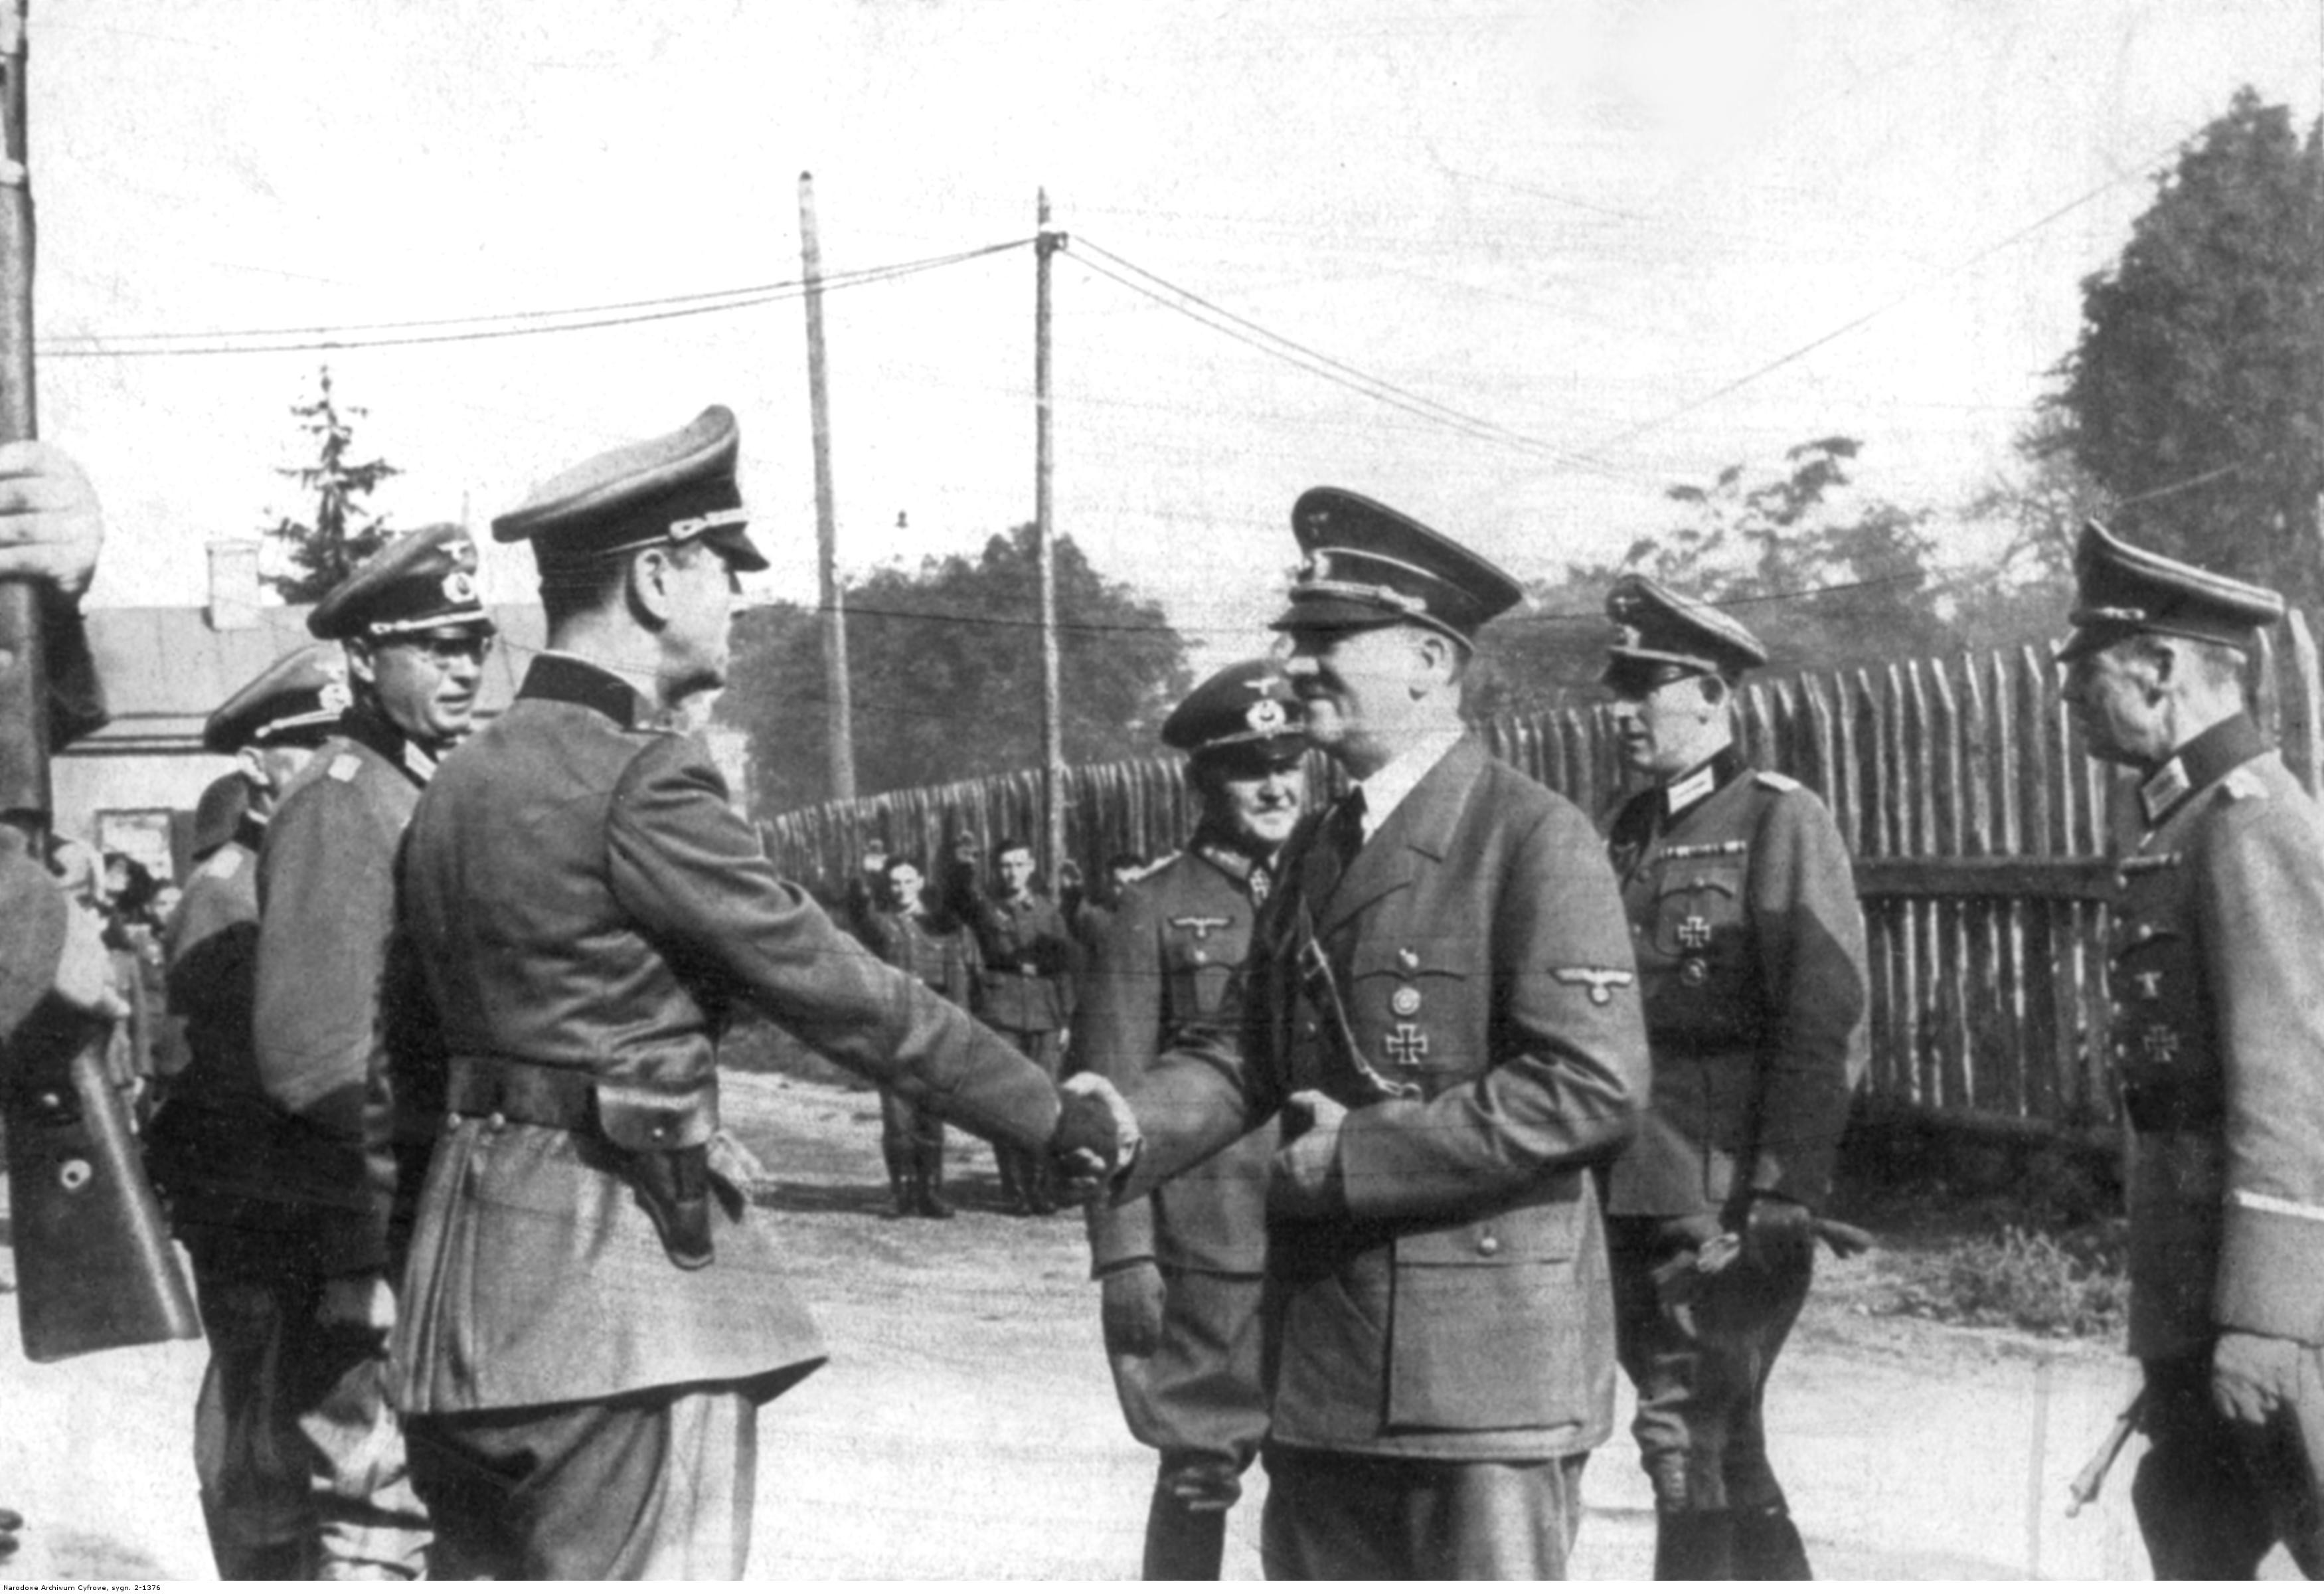 Adolf Hitler during a visit to general Rundstedt's headquarters in Ukraine